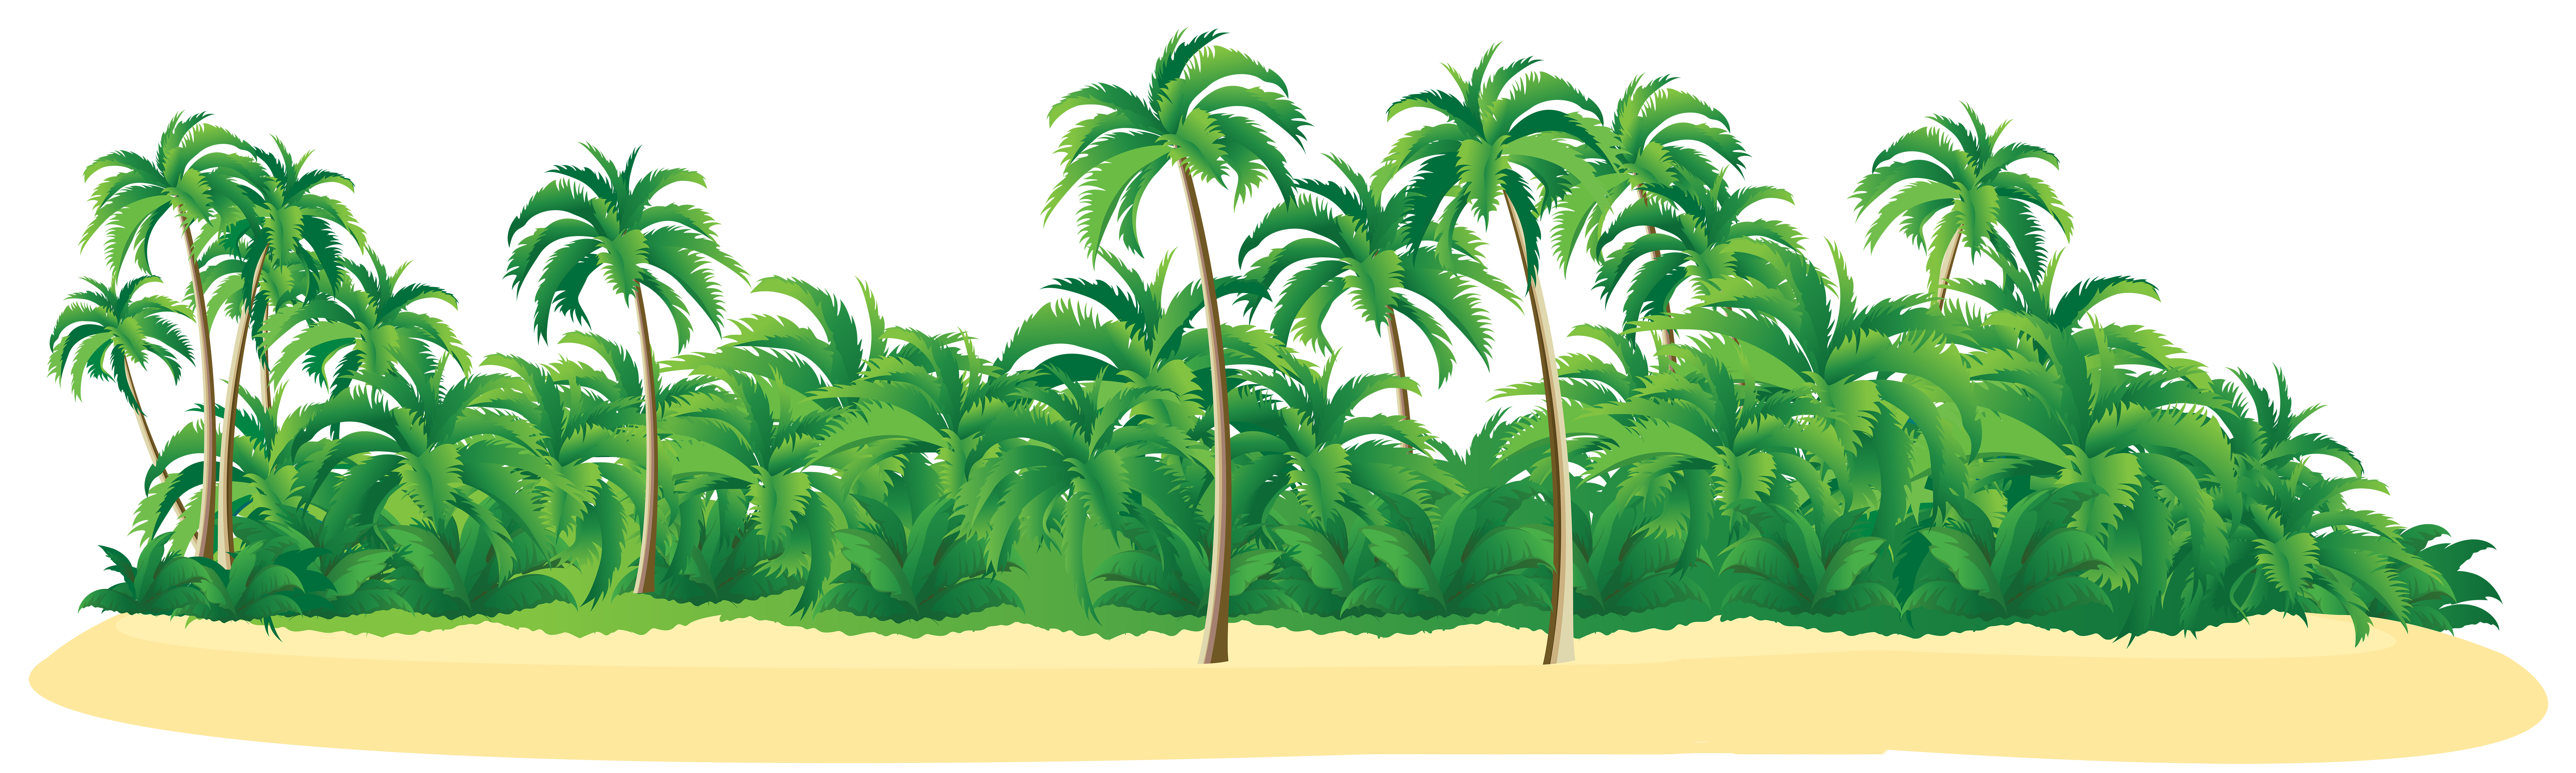 Png island. Summer tropical with palm